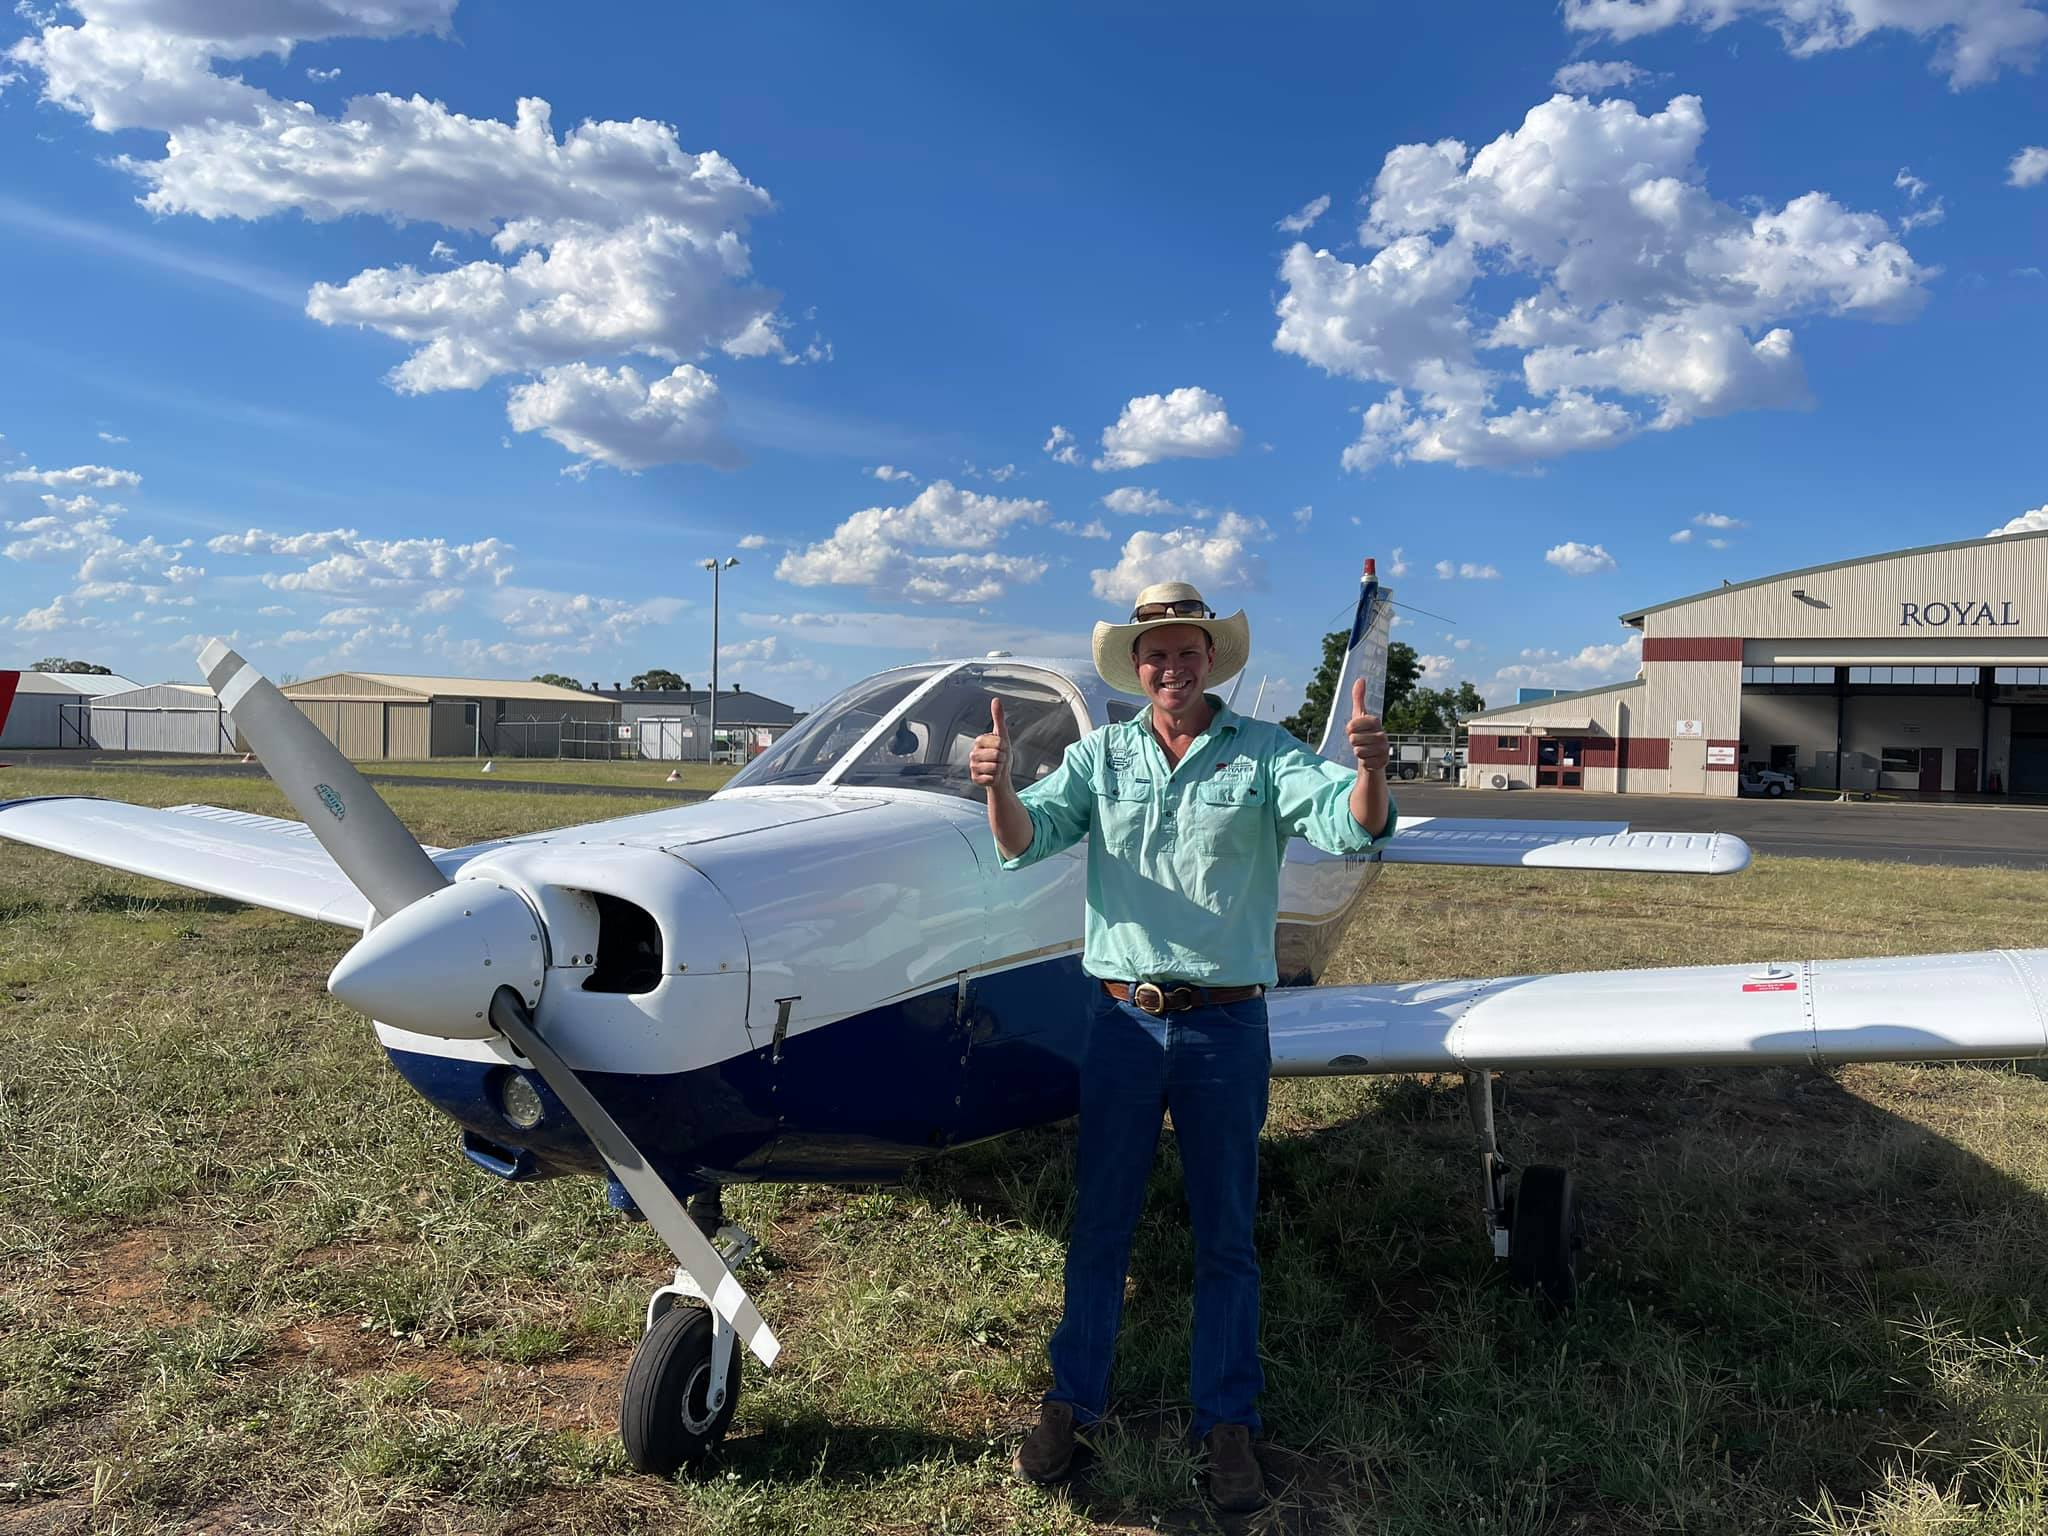 Congratulations to Dubbo's newest private pilot, Tom Tourle! Was a hot and bumpy test today 🥵 but Tom handled it well ✈️